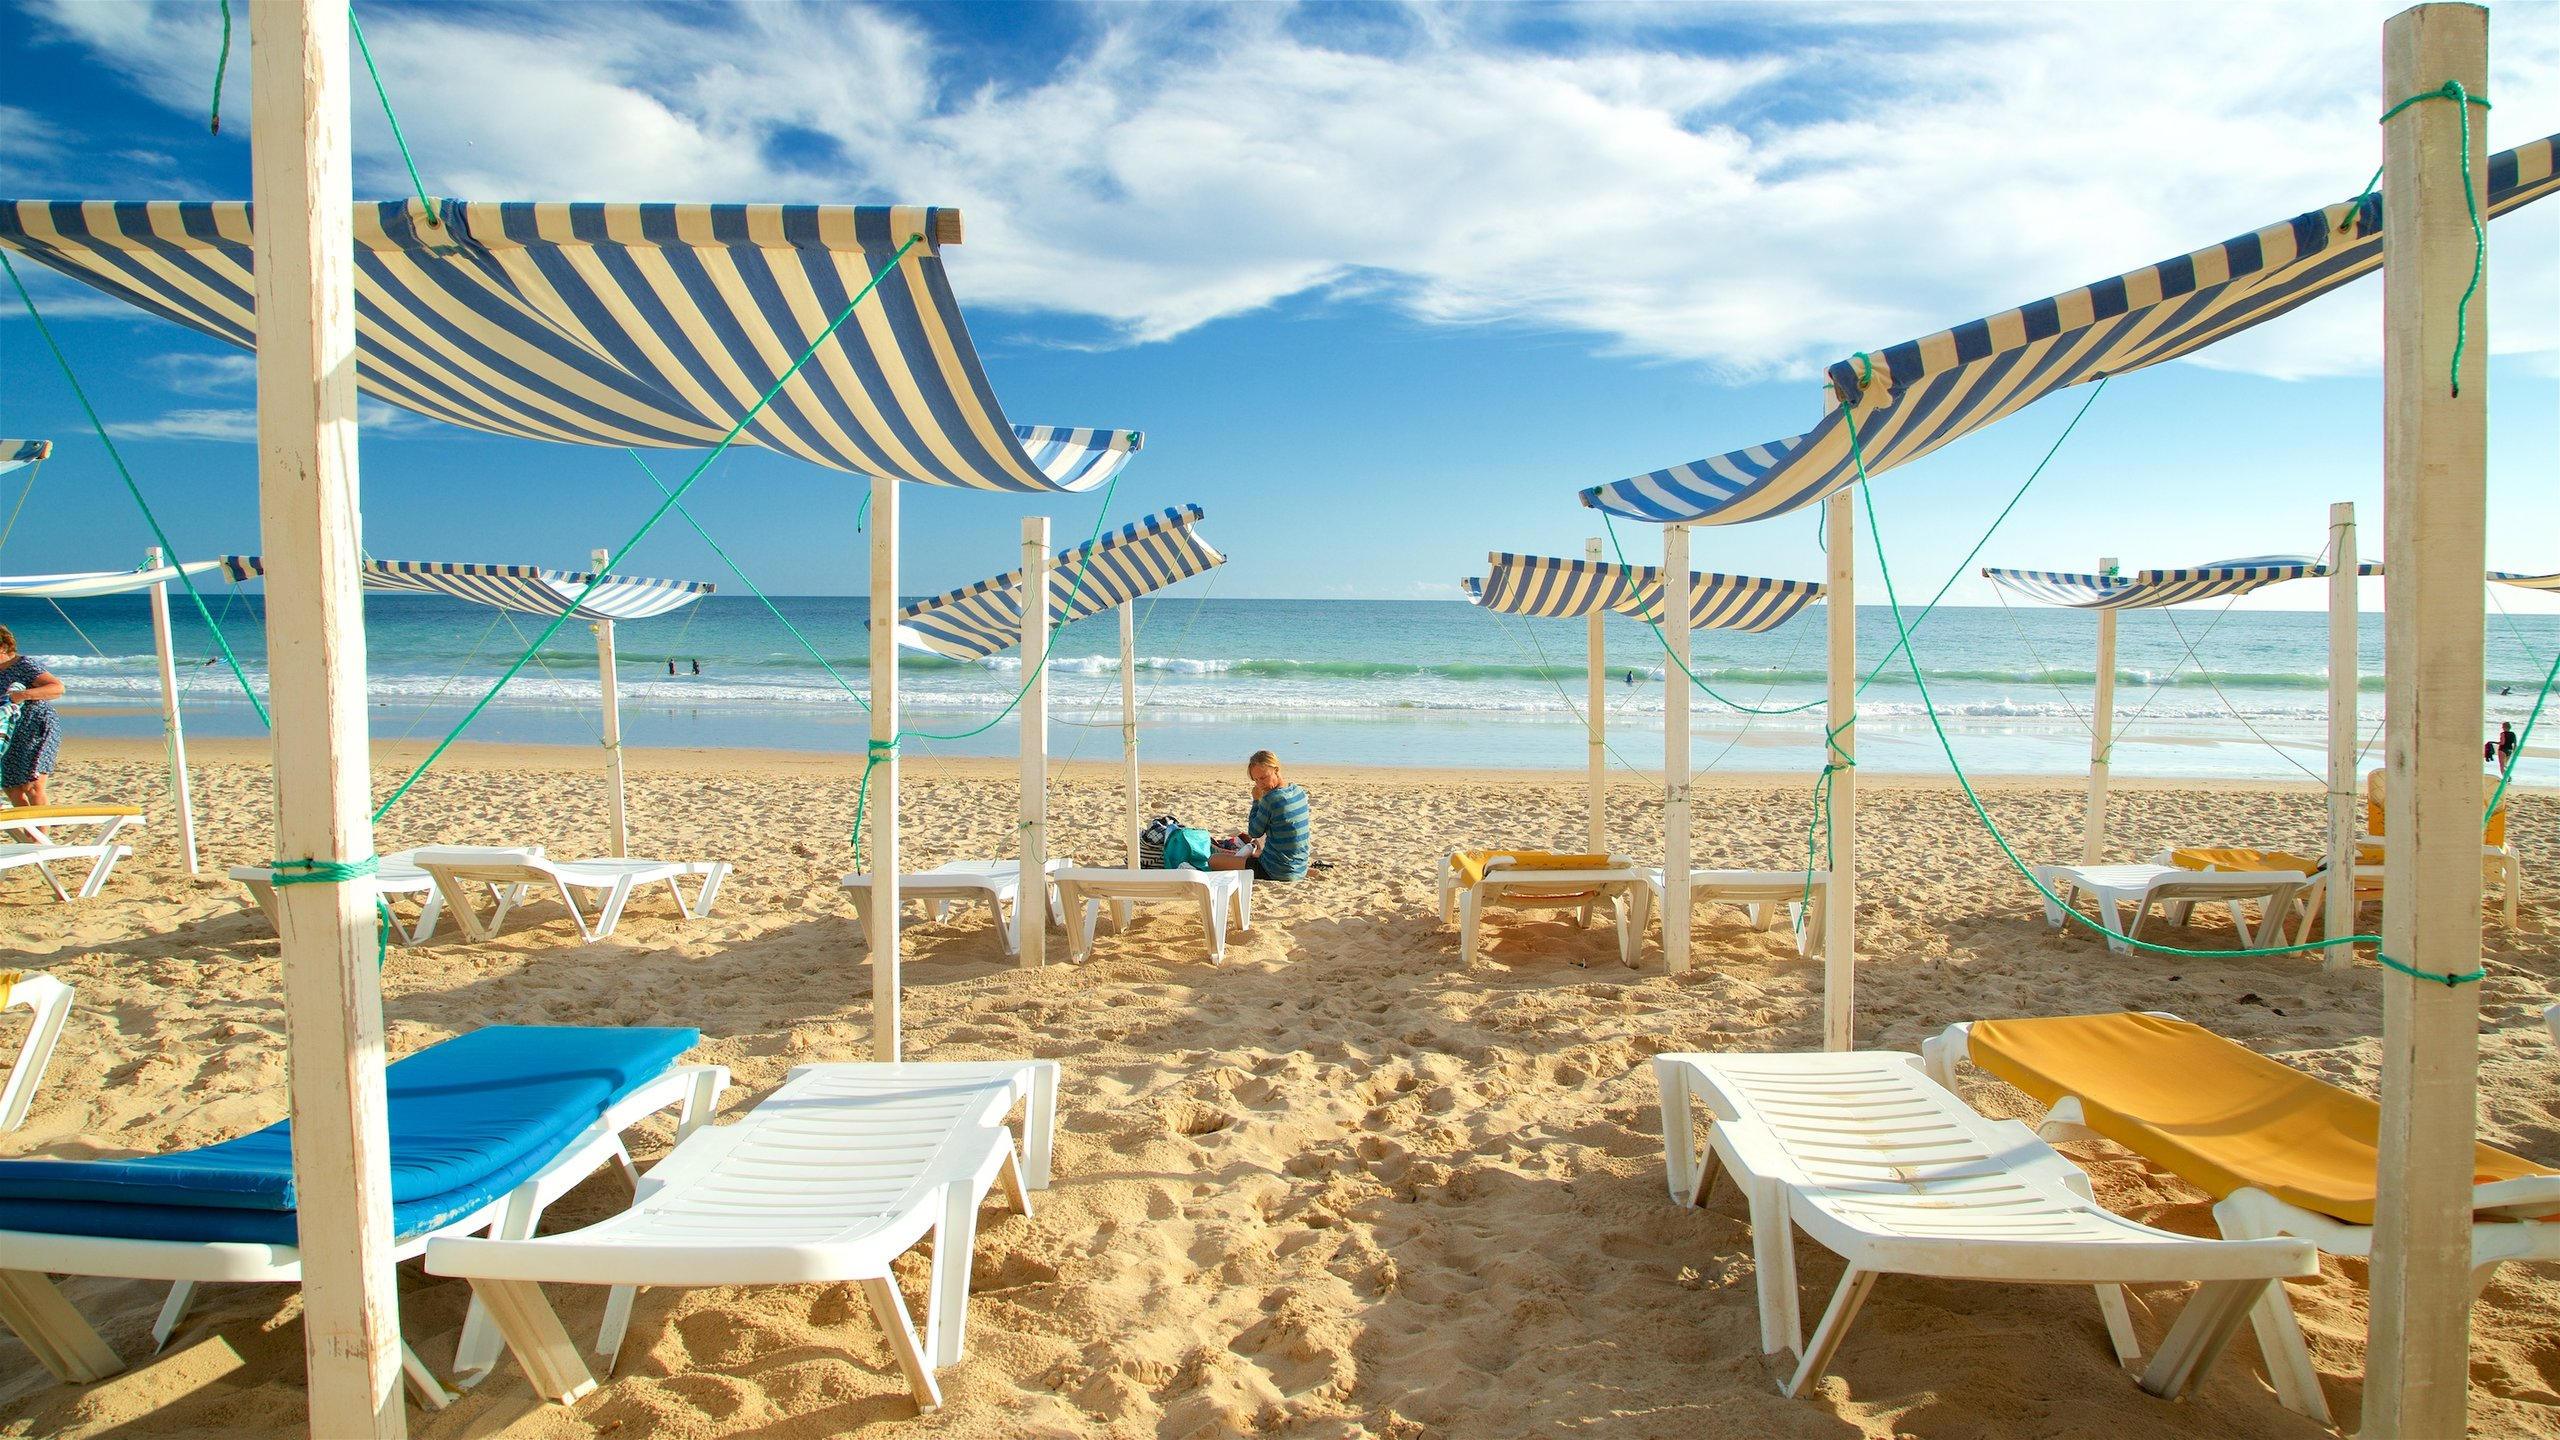 The Best Hotels Closest to Porto de Mos Beach - 2020 Updated ...